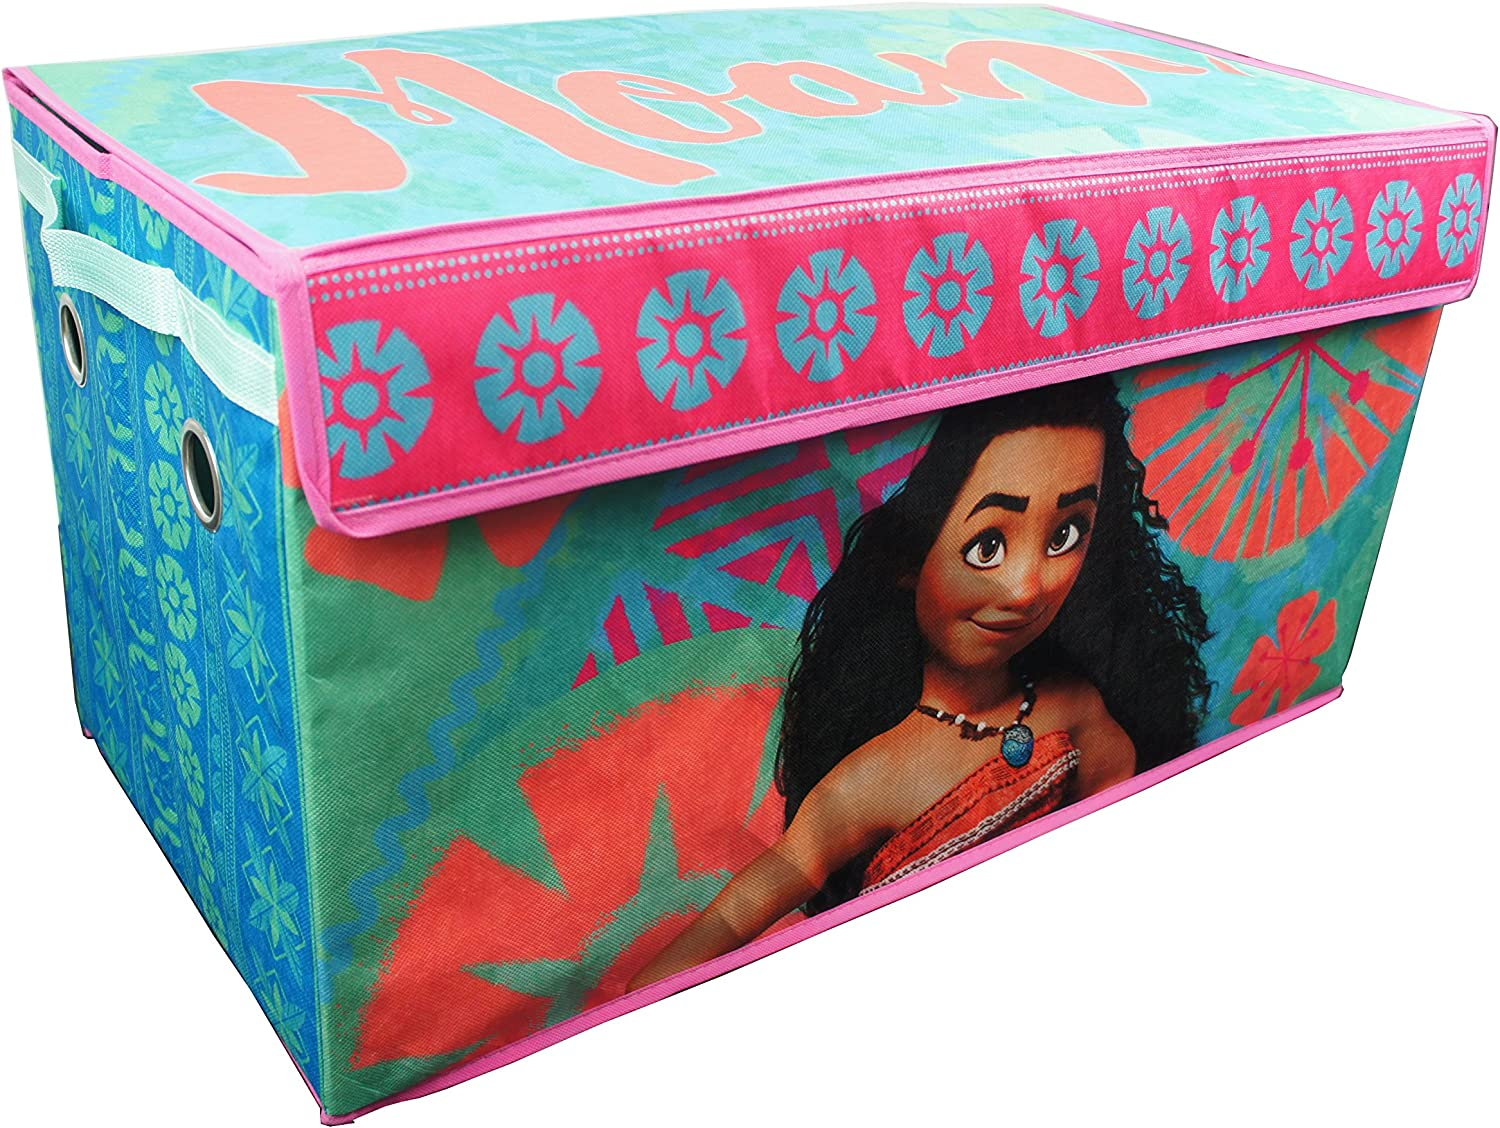 Top 10 Best Moana Toys (2020 Reviews & Buying Guide) 2